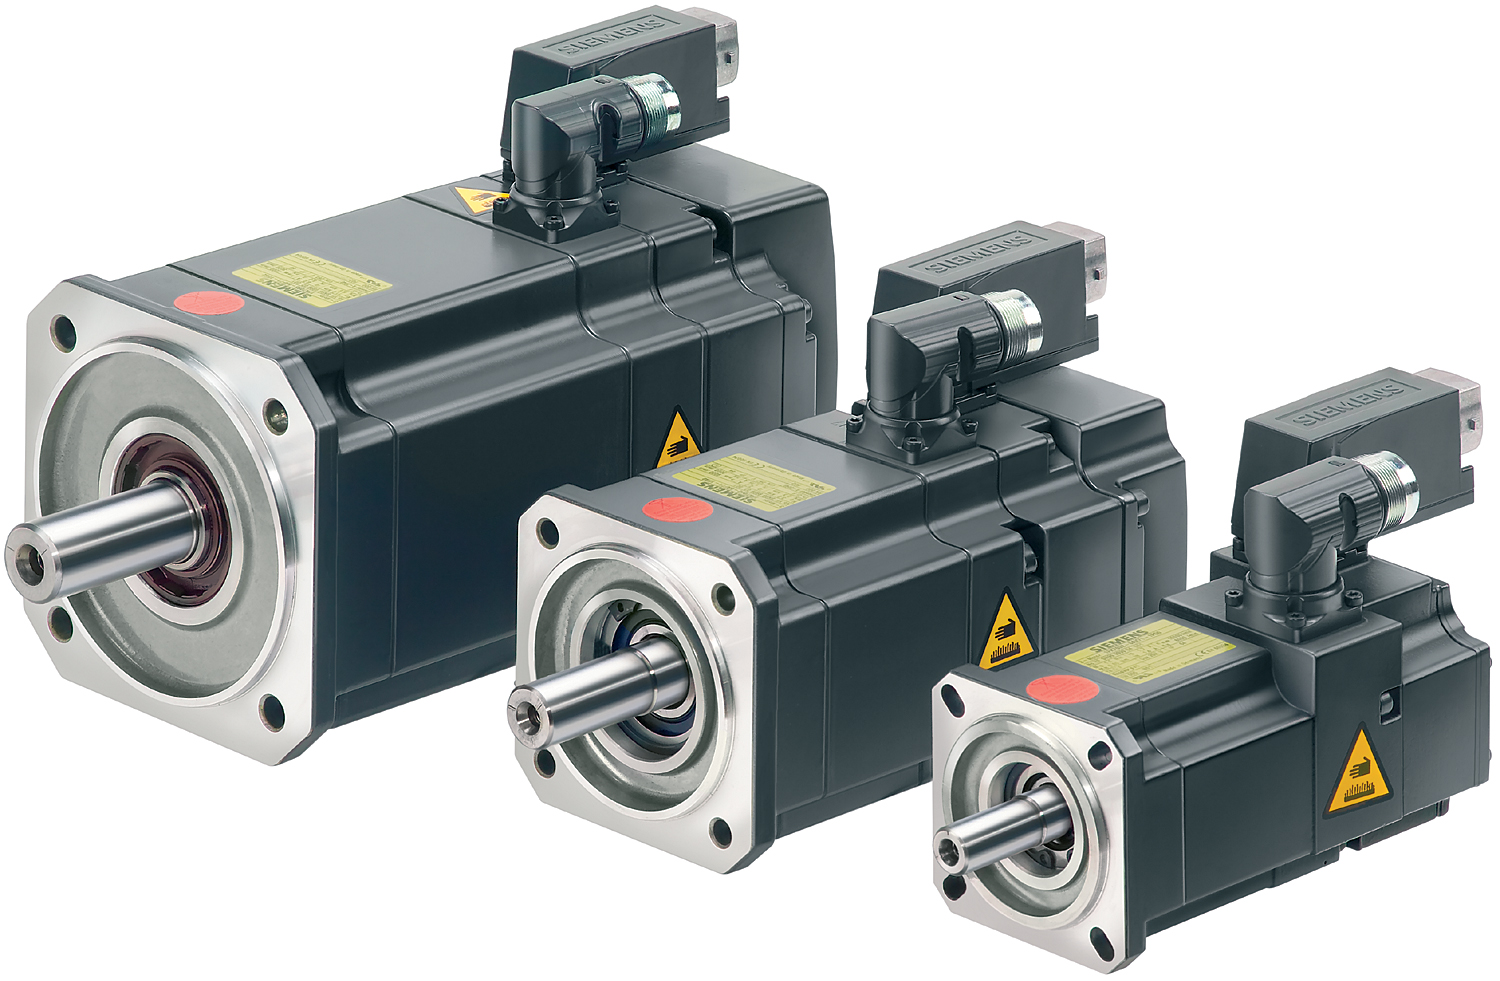 siemens_1fk7_ct_hd_servomotors